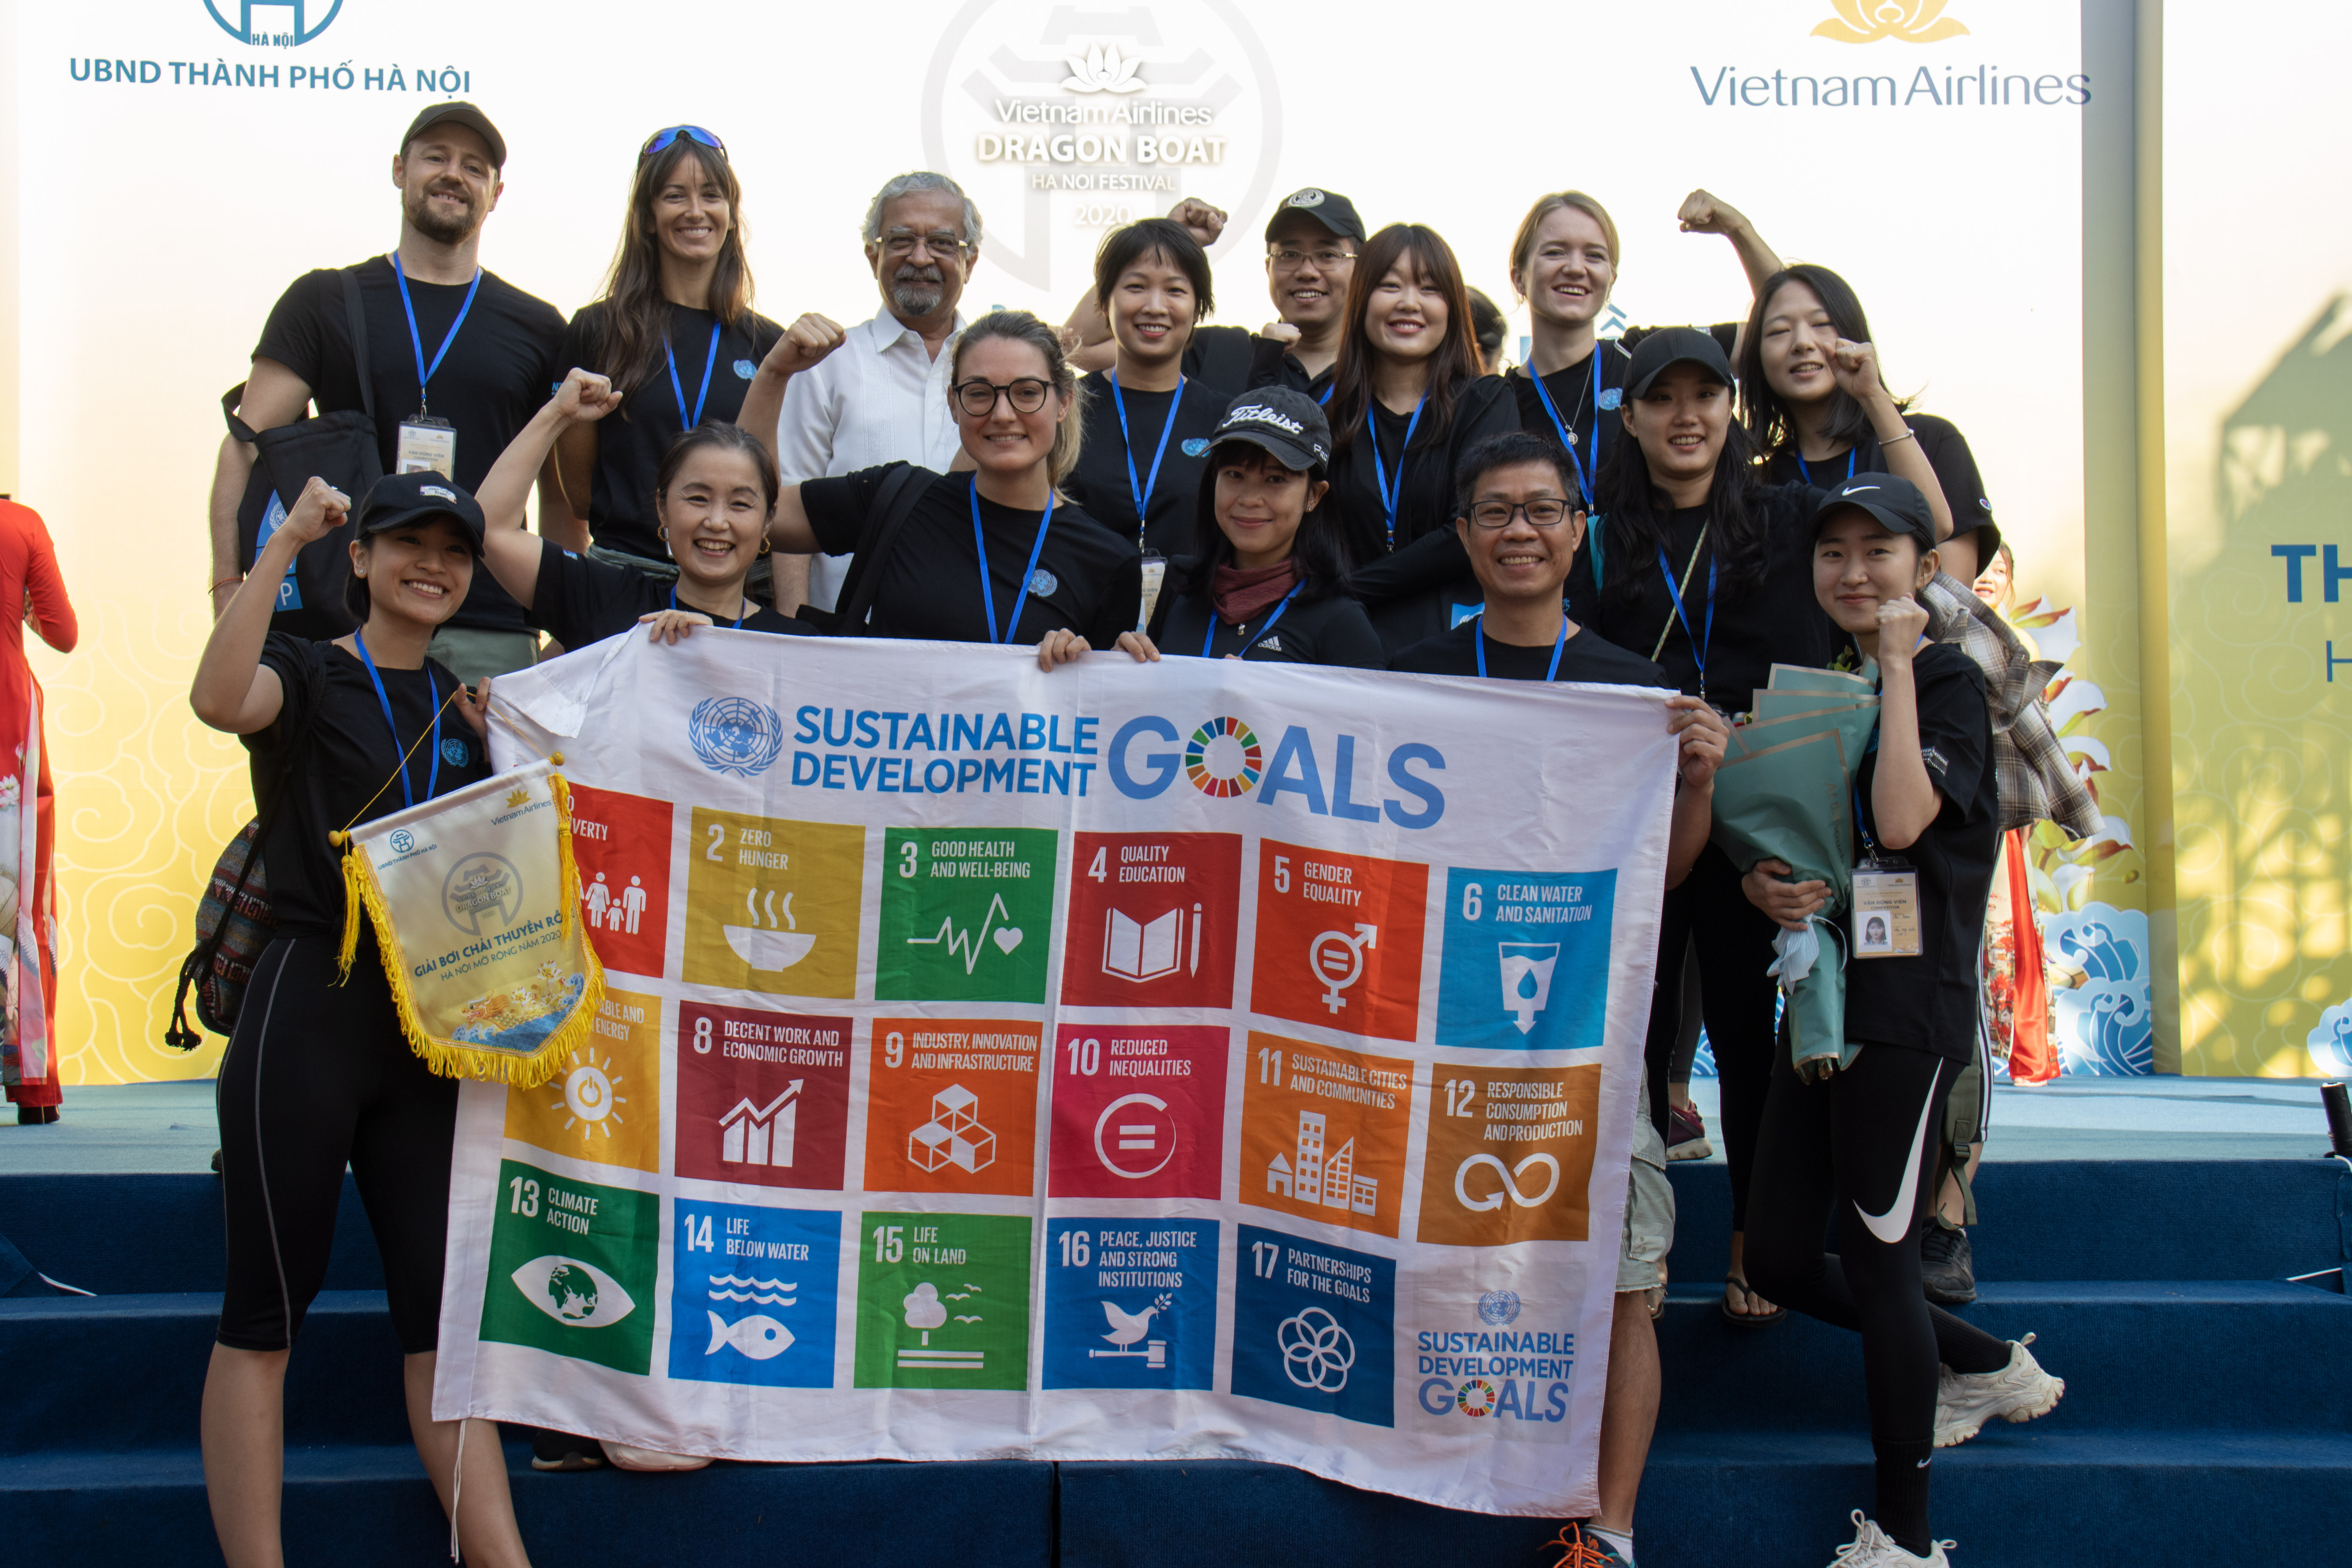 The UN in Viet Nam dragon boat promotes One UN Spirit for UN75 and Sustainable Development Goals